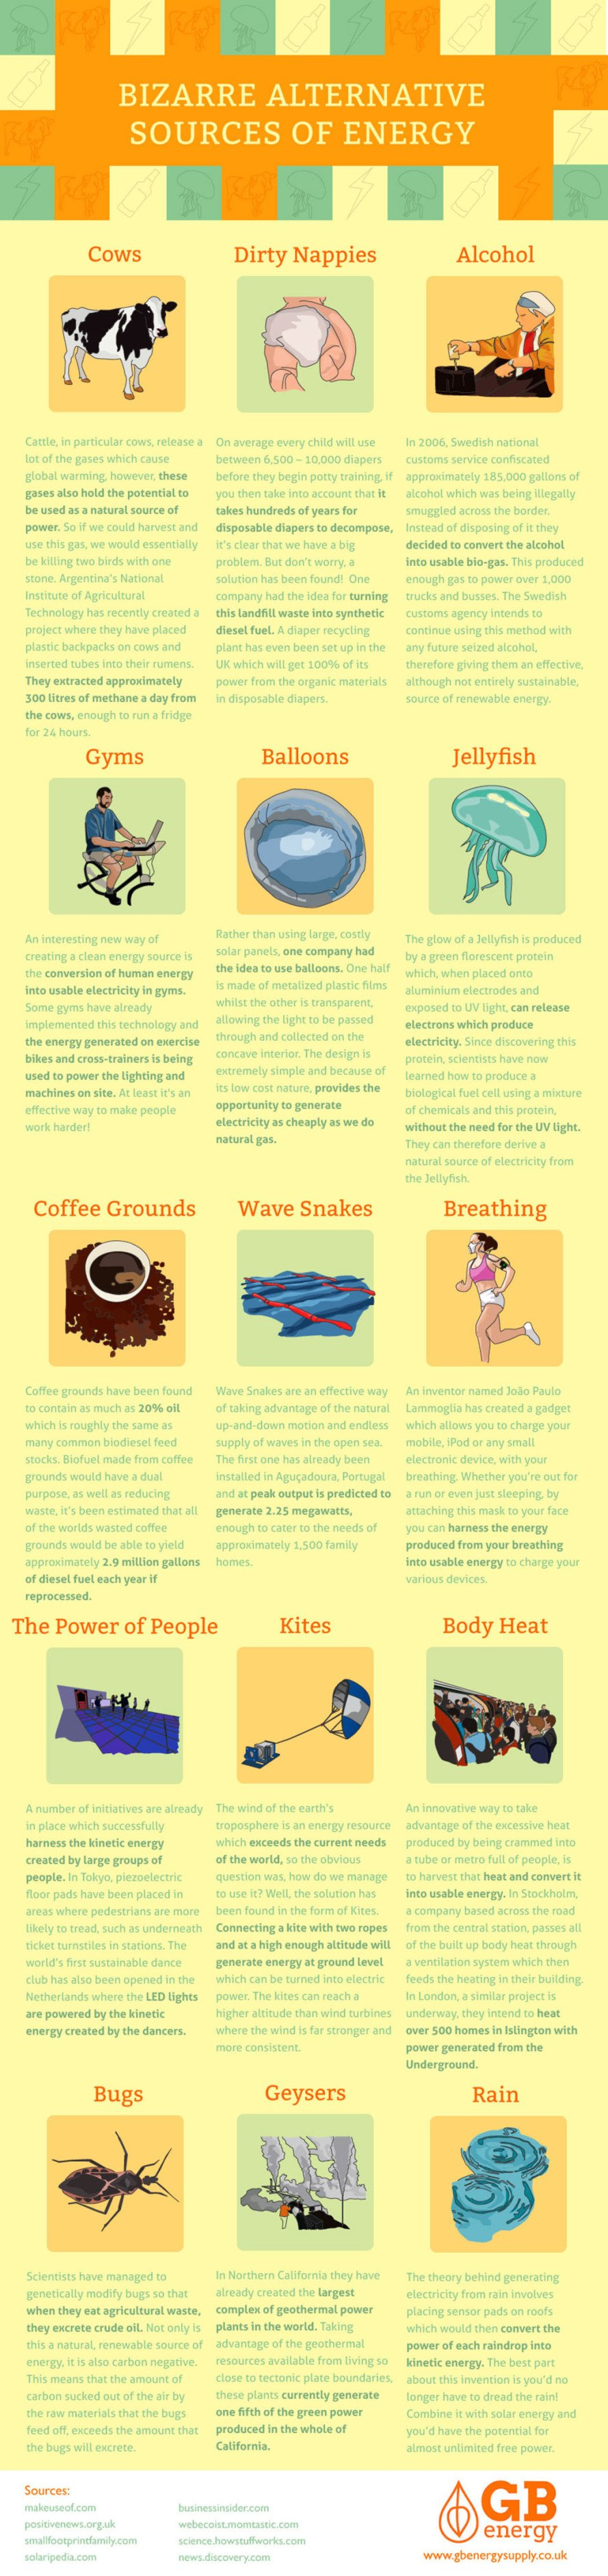 energy alternatives, green energy, diaper energy, cow energy, kinetic energy, coffee grounds energy, wave snakes, running energy, breathing energy, infographic, eco fuel, green fuel, green technology, green innovations, reader submission